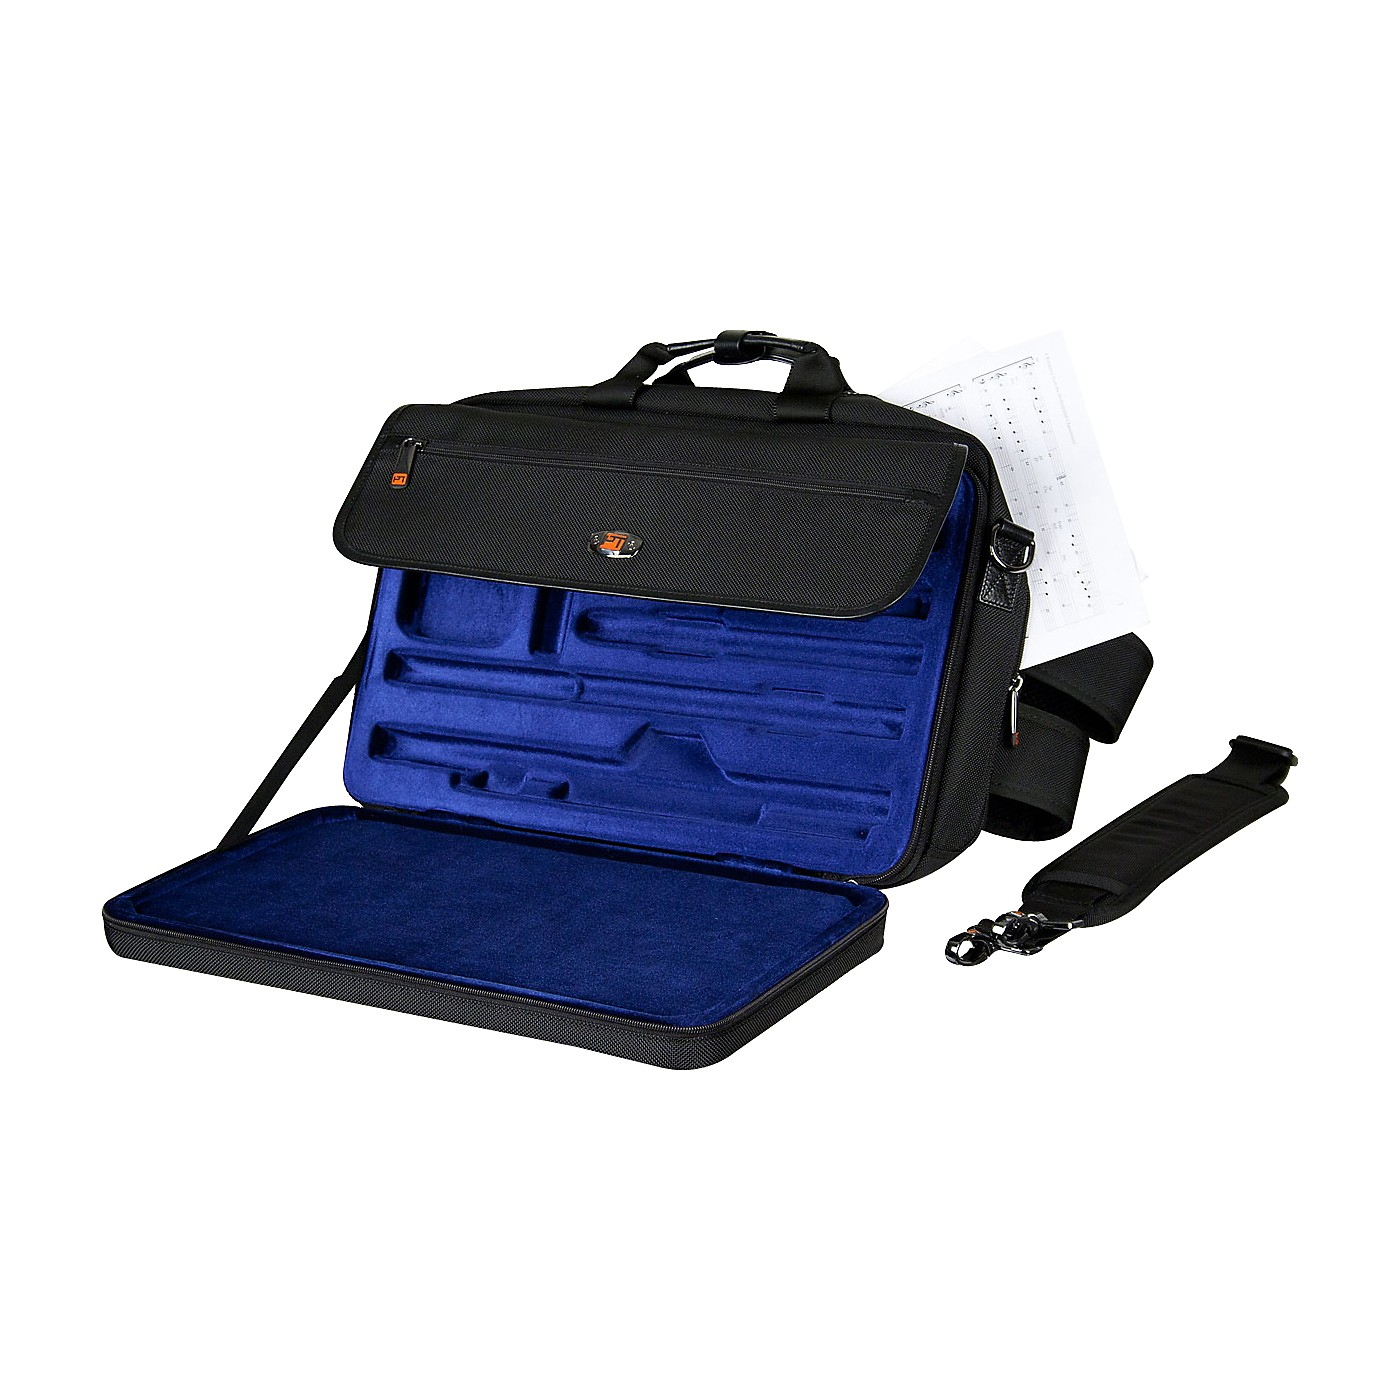 Protec LUX Flute and Piccolo Case with Sheet Music Messenger Bag thumbnail